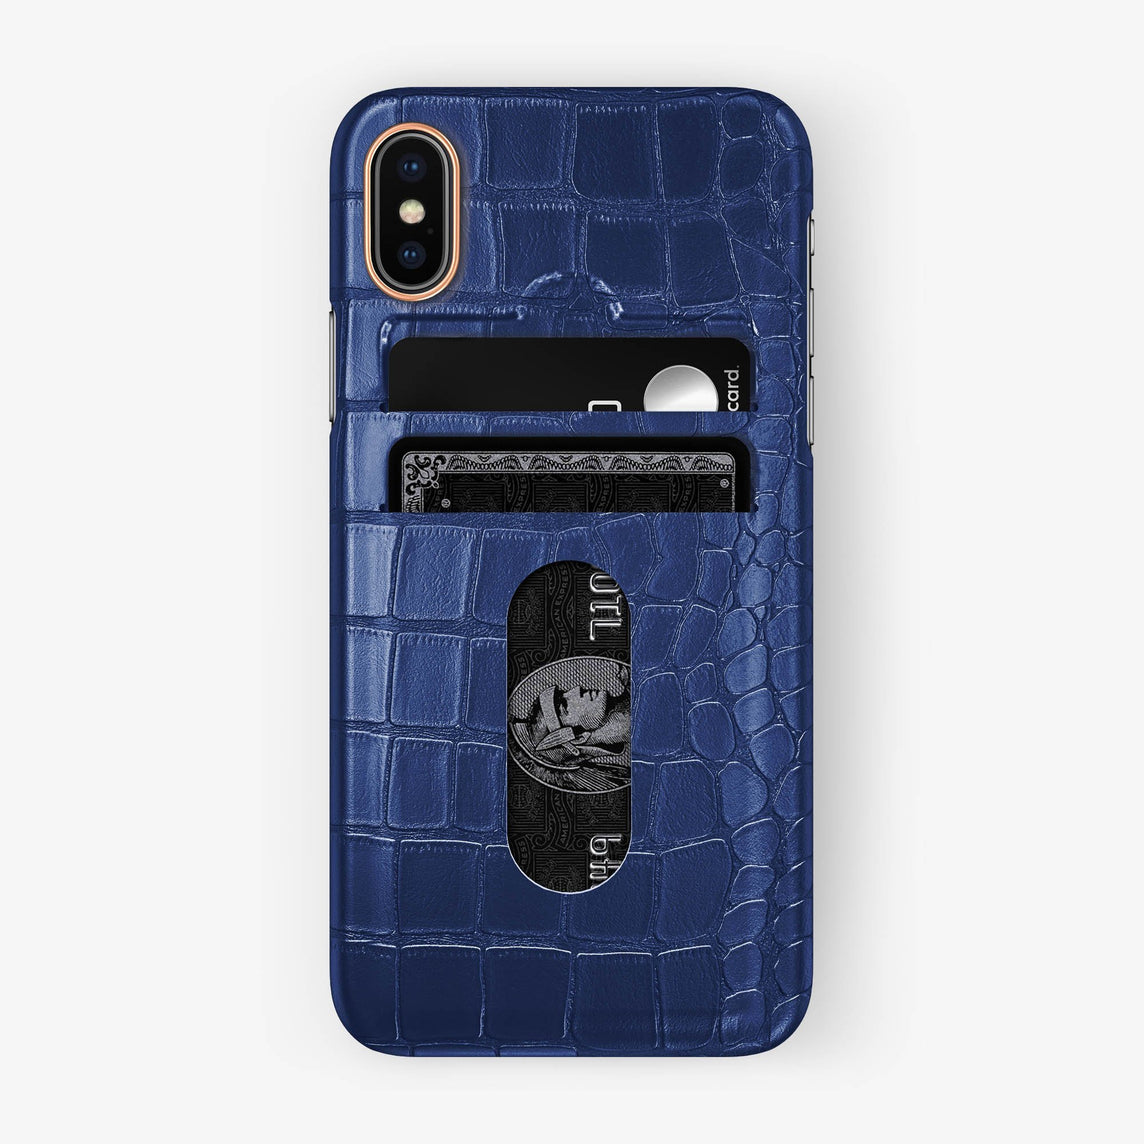 Alligator Card Holder Case iPhone X/Xs | Navy Blue - Rose Gold - Hadoro